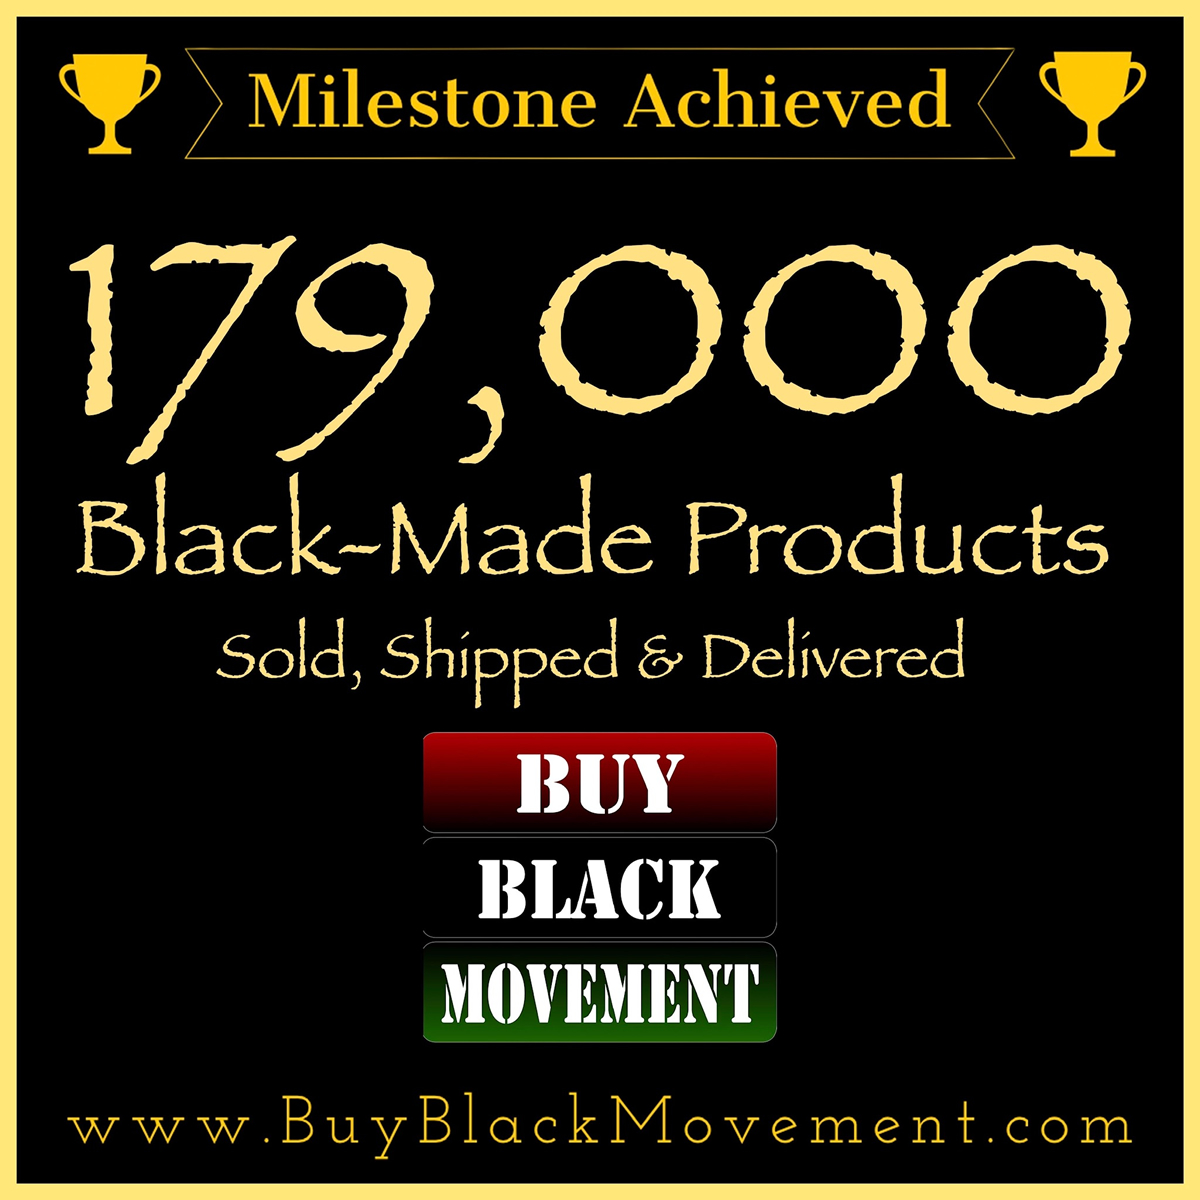 179,000 Products Sold